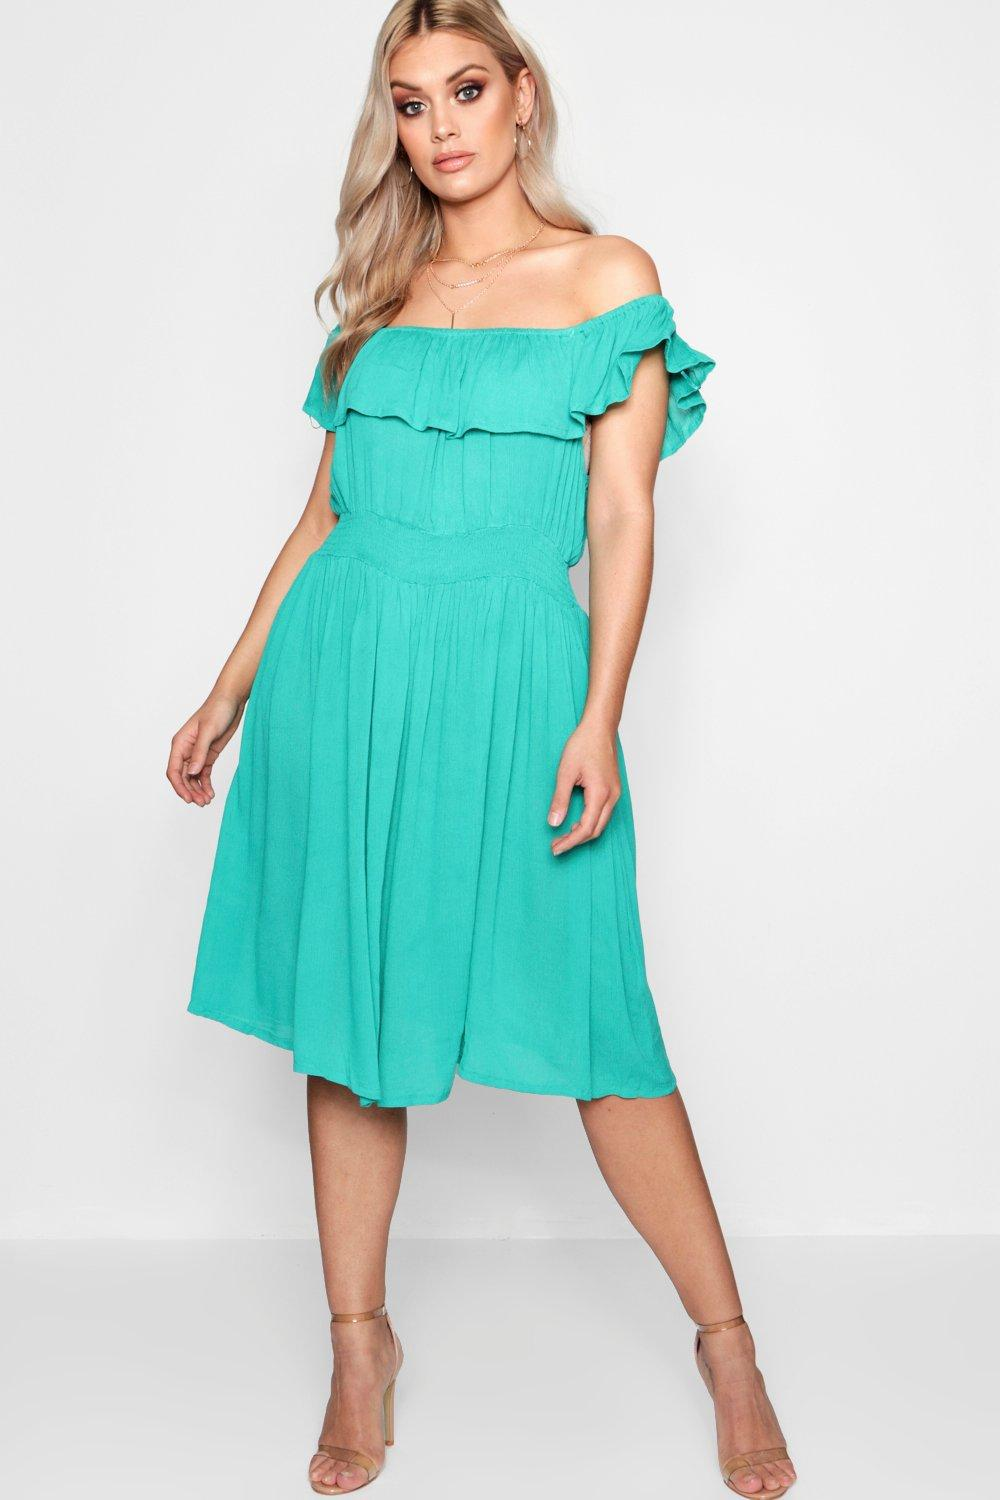 Lyst - Boohoo Plus Laura Off The Shoulder Midi Dress in Green